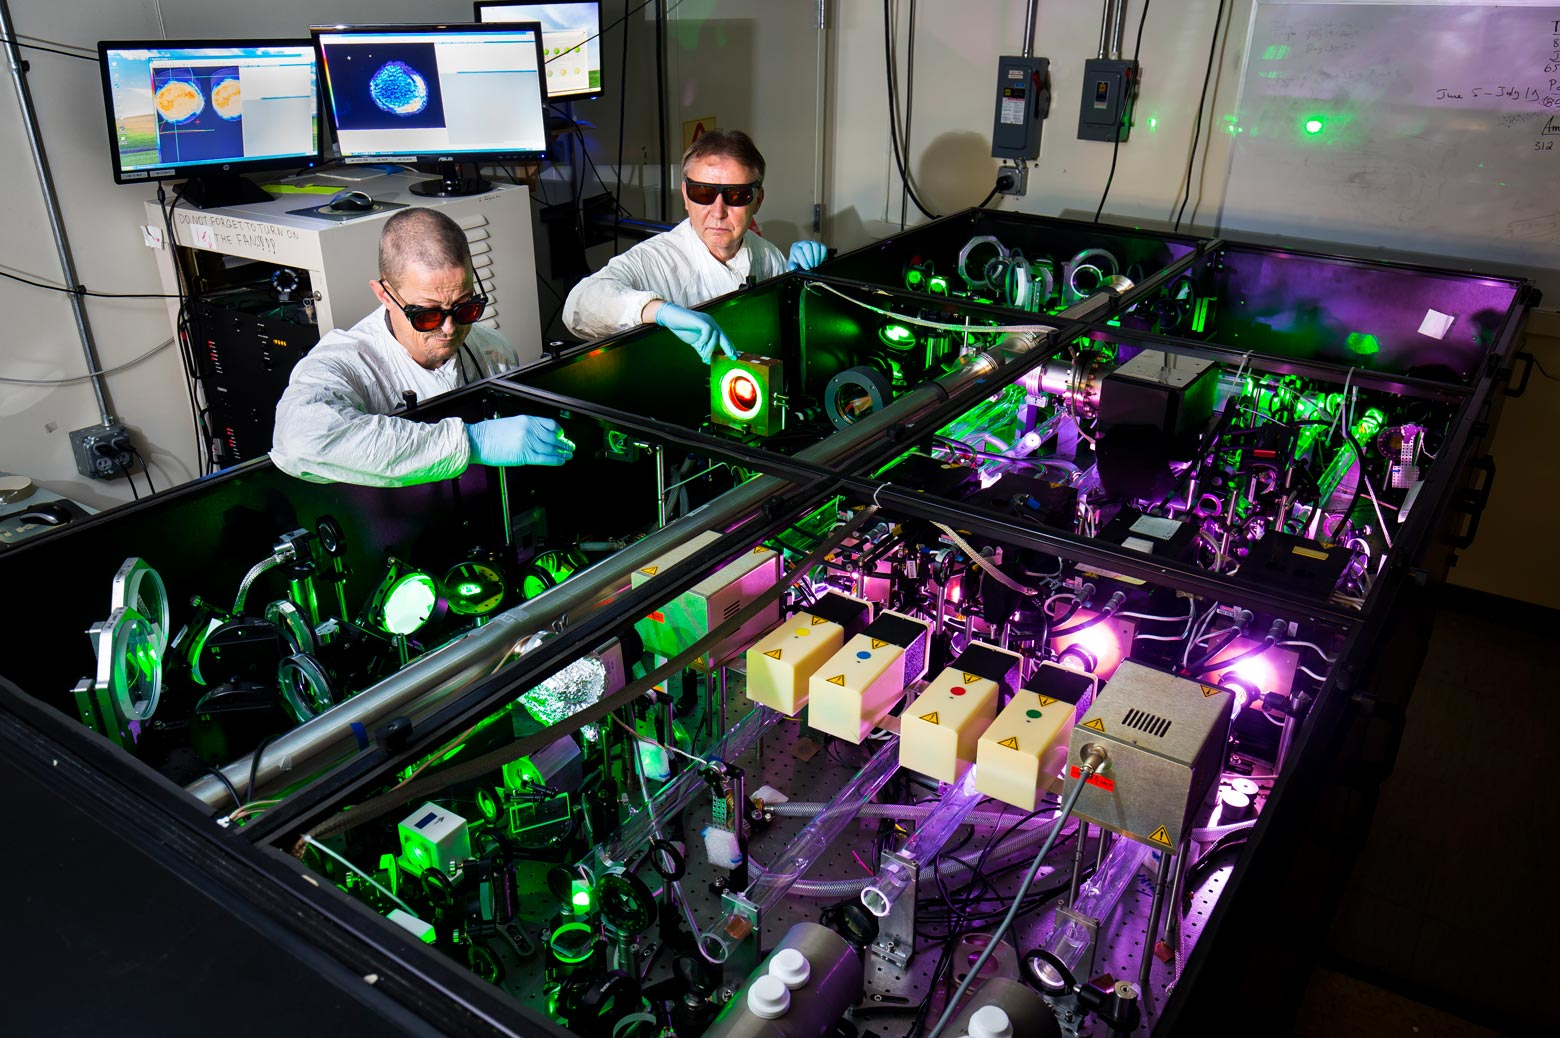 Two scientists stand next to the HERCULES laser